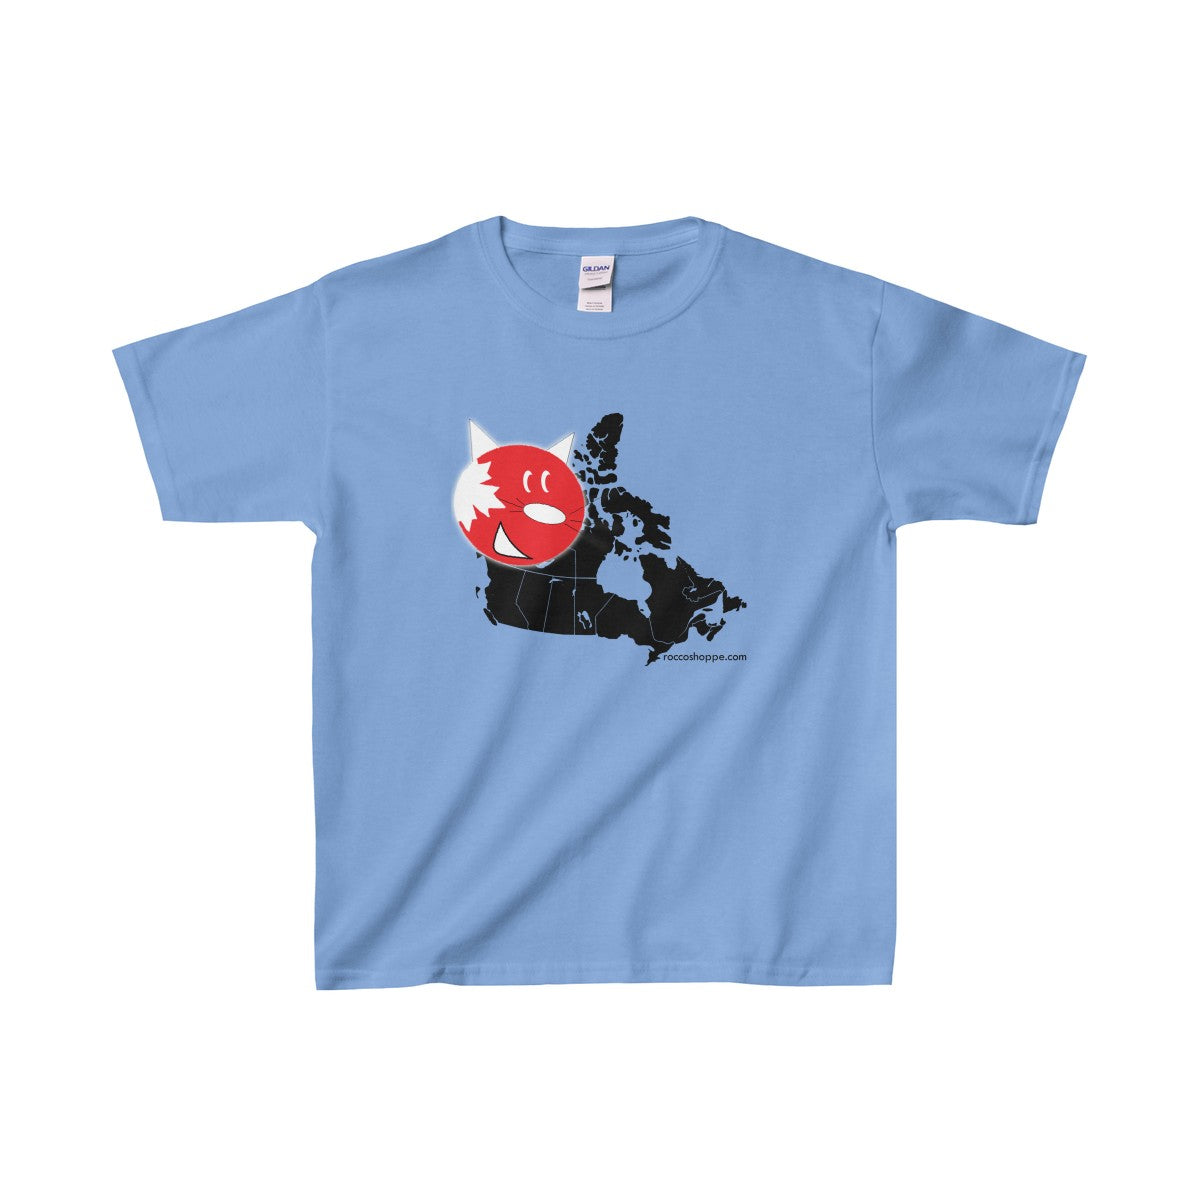 Rocco's Pal Romy Bigger Kids Heavy Cotton™ Tee